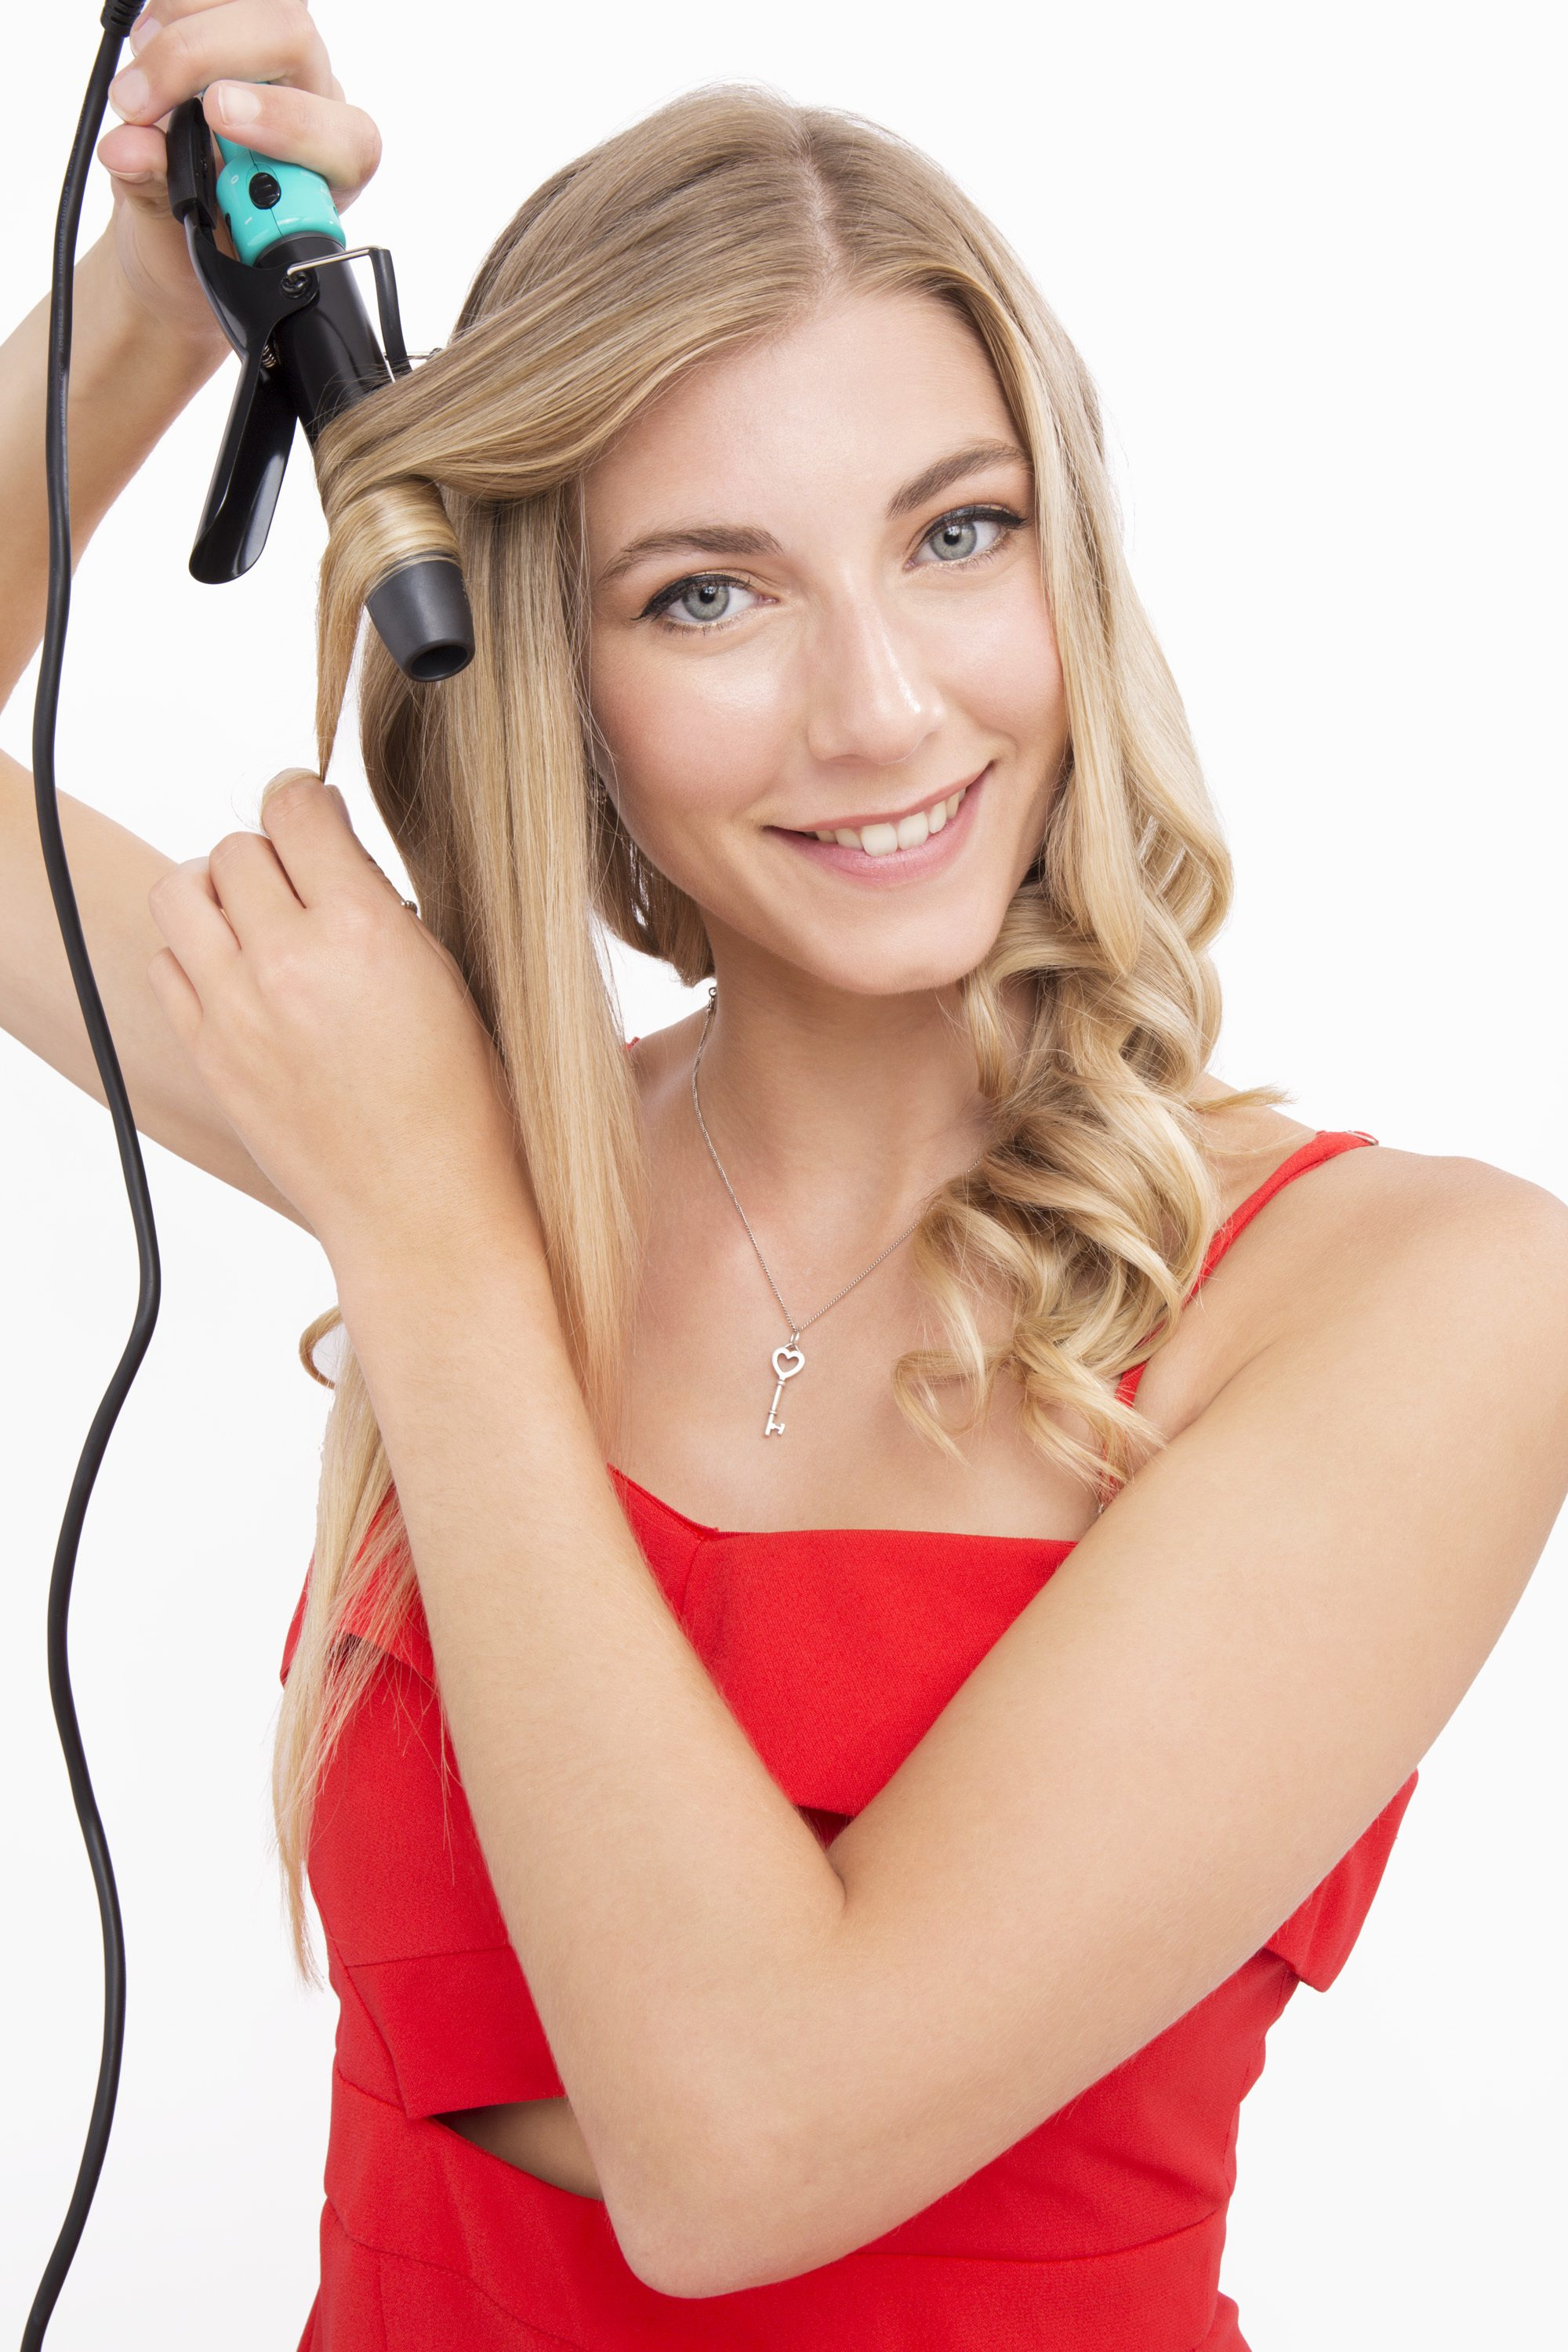 blonde model in a red jumpsuit using a curling tong to curl her hair